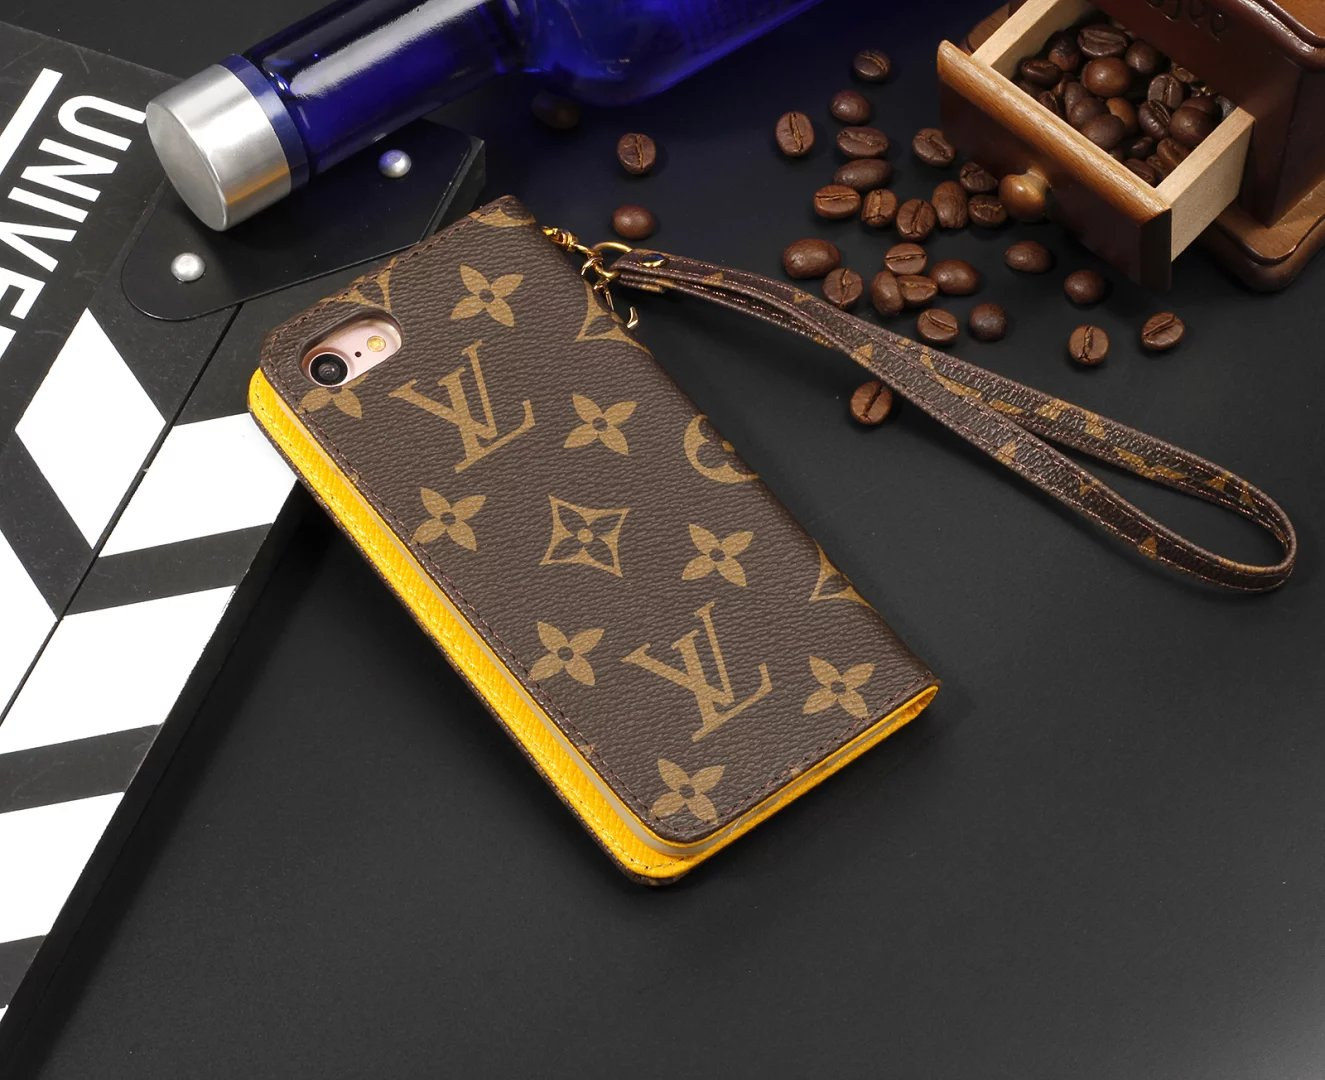 best covers for iphone 6s iphone 6s best case fashion iphone6s case two iphone case nexus 6s case cases for iphone 6s where to customize phone cases case iphone 6s 6s iphone